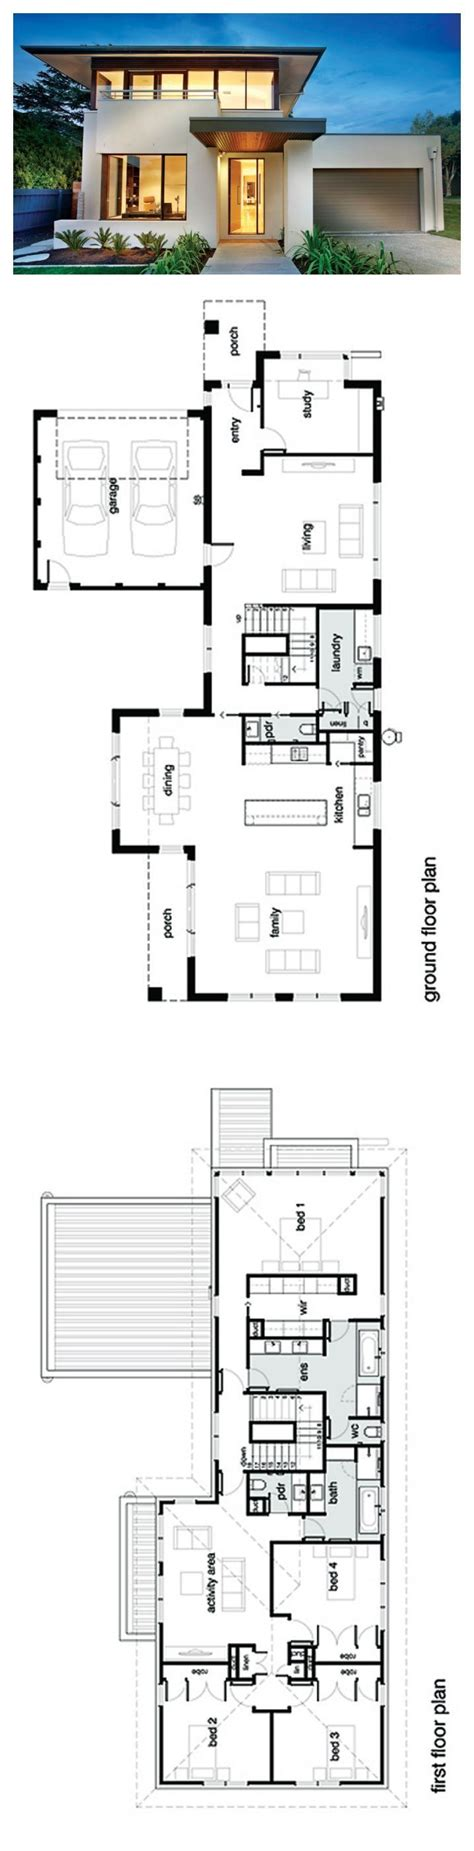 two story house plan real estate investing bathroom modern story house